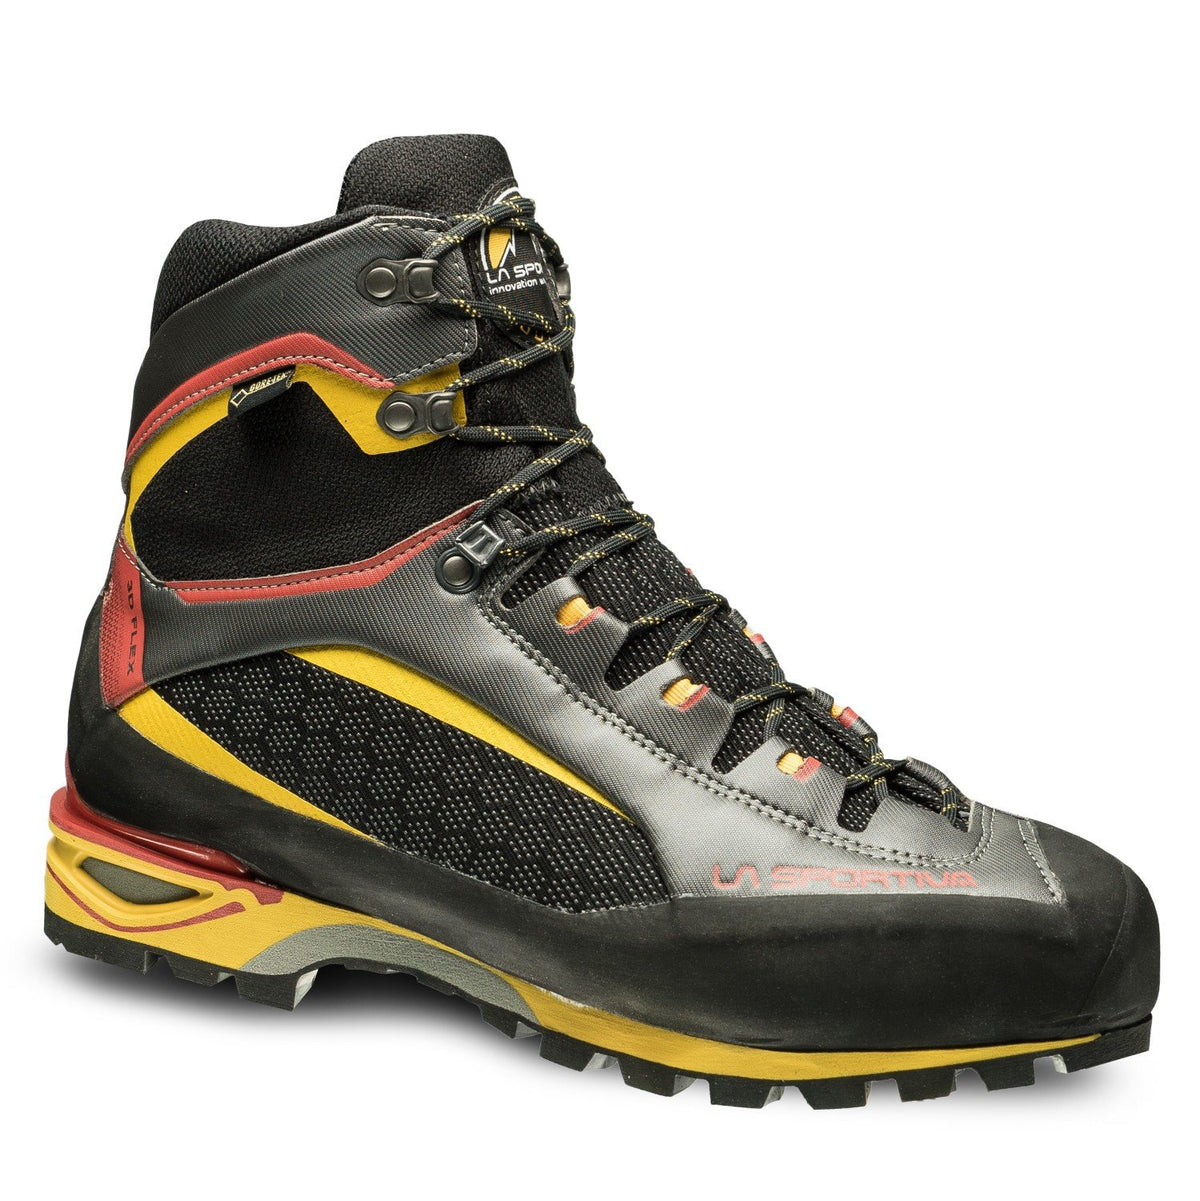 La Sportiva Trango Tower GTX Mountaineering Boot, in black, grey, red and yellow colours